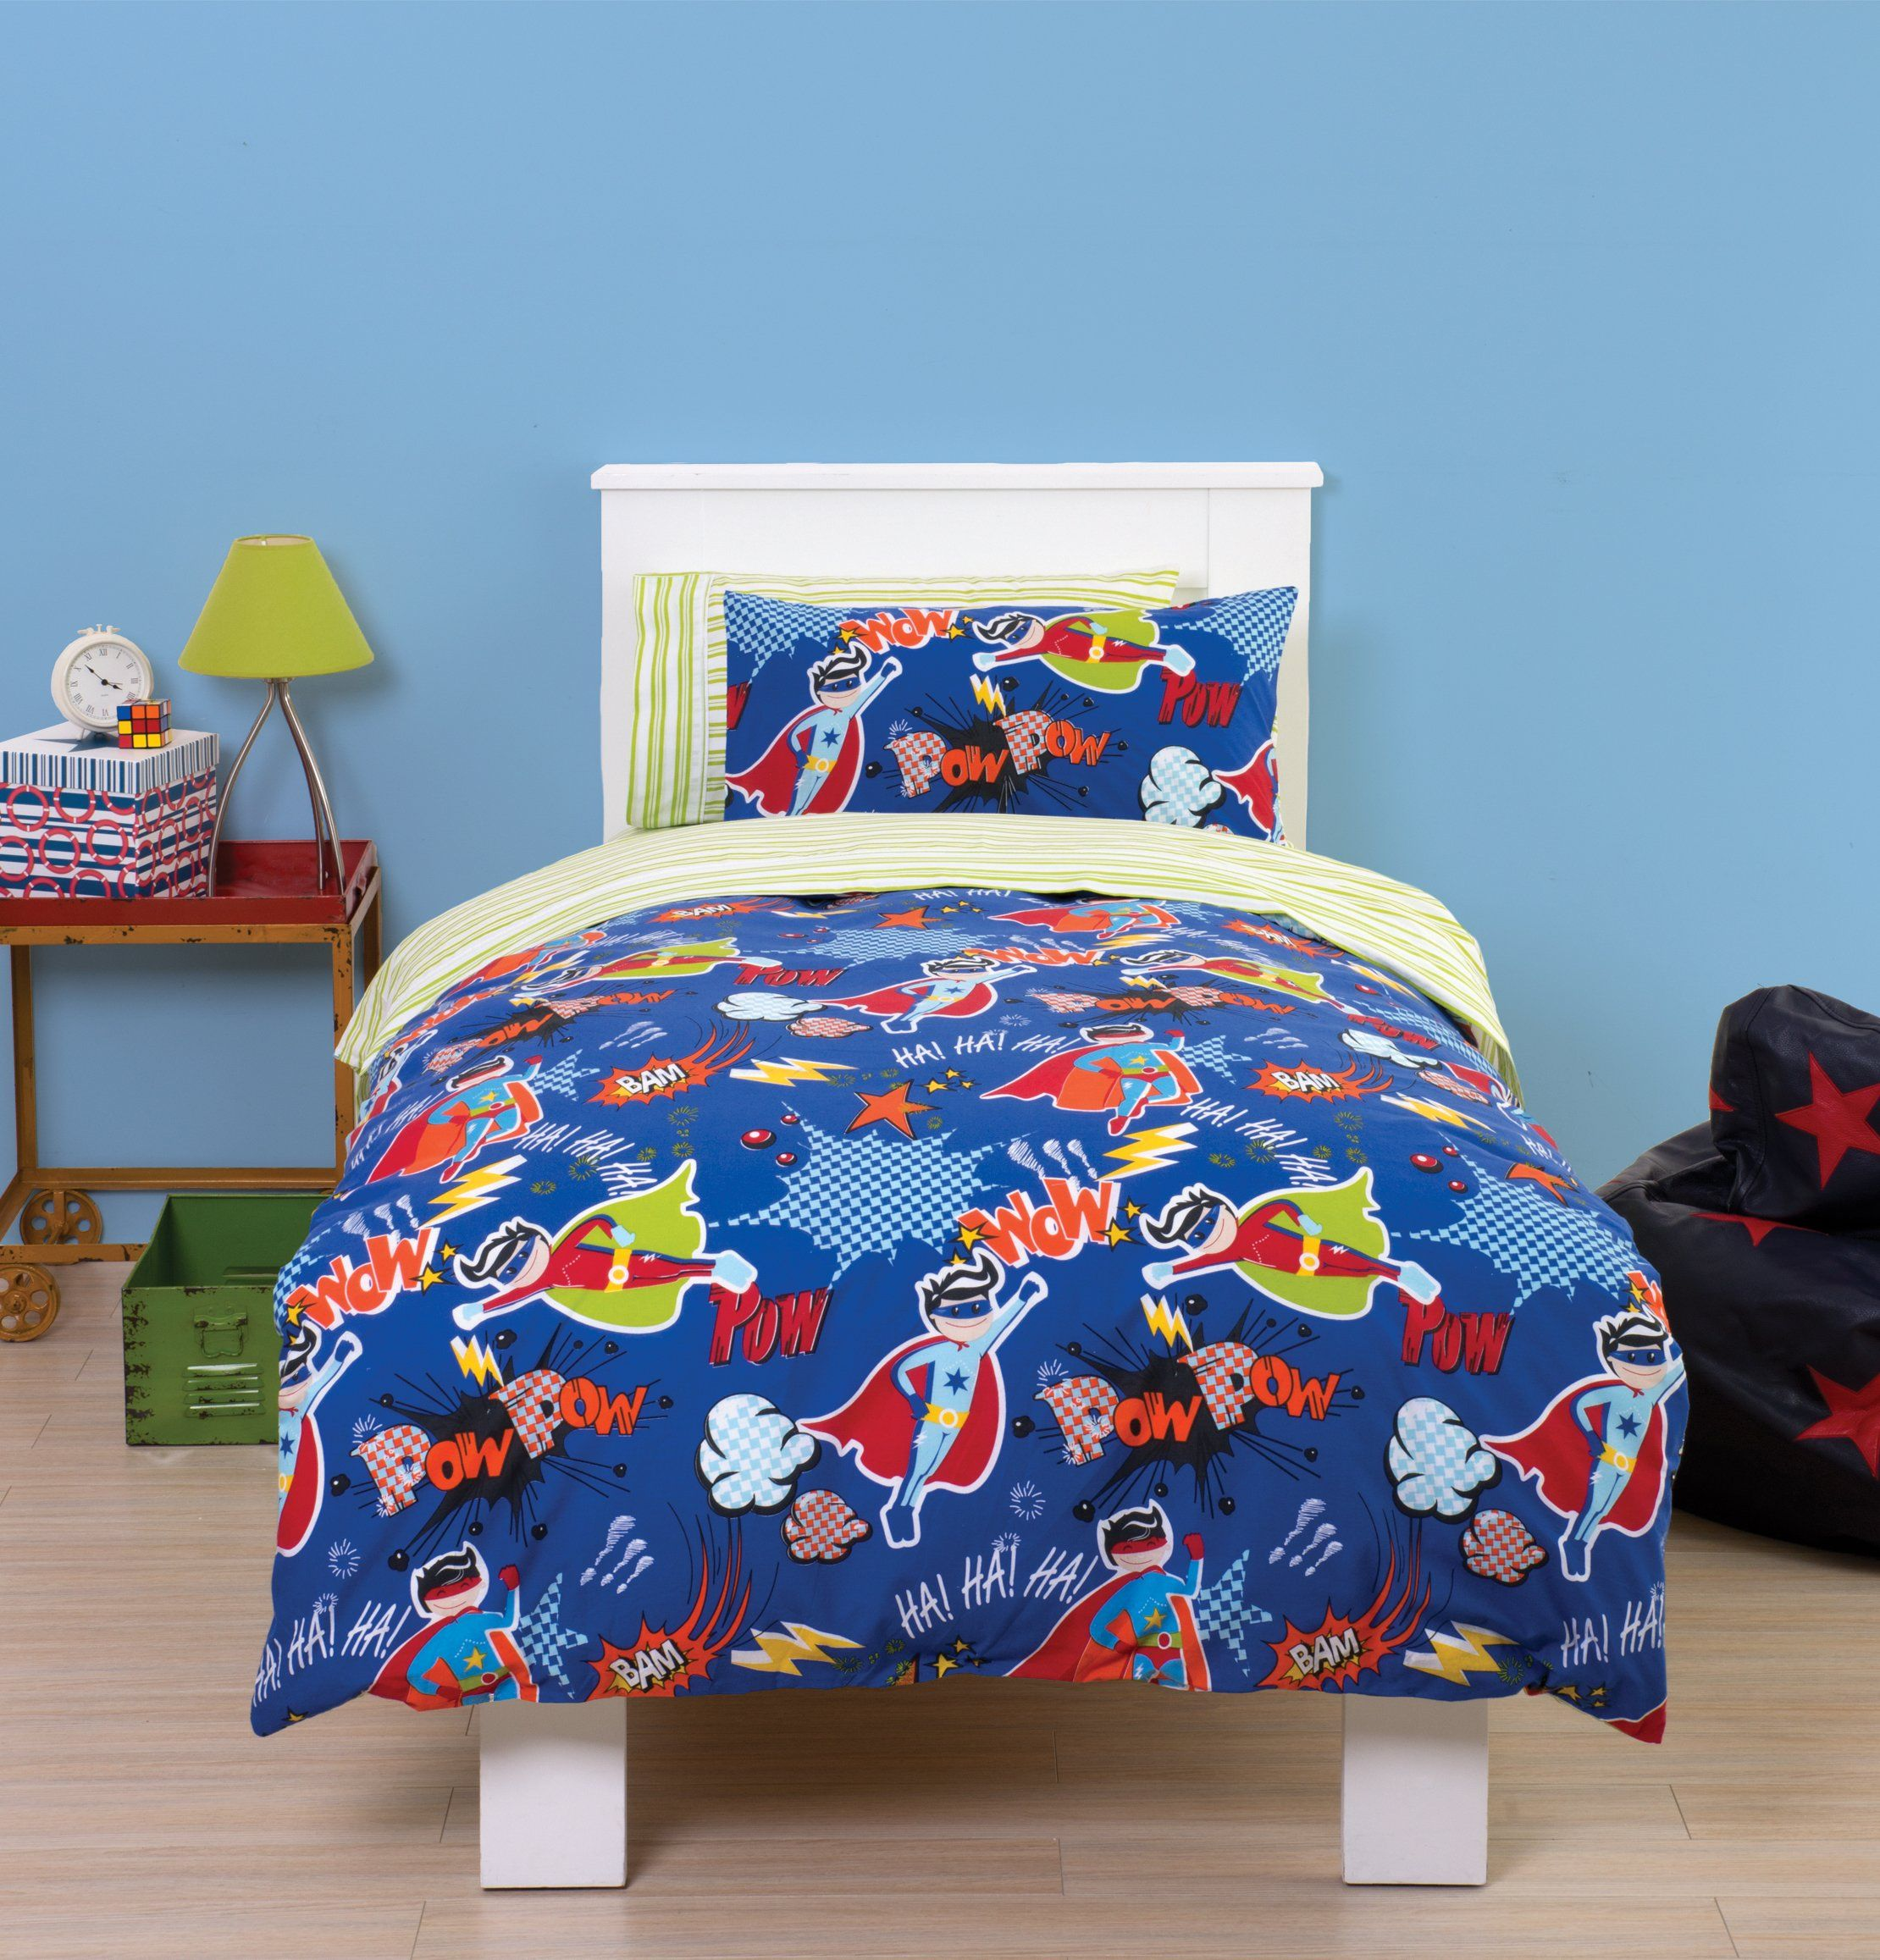 bed clever target duvet sets discontinued turquoise boys covers urban flagrant room comforters dorm bedding bedspreads cover comforter